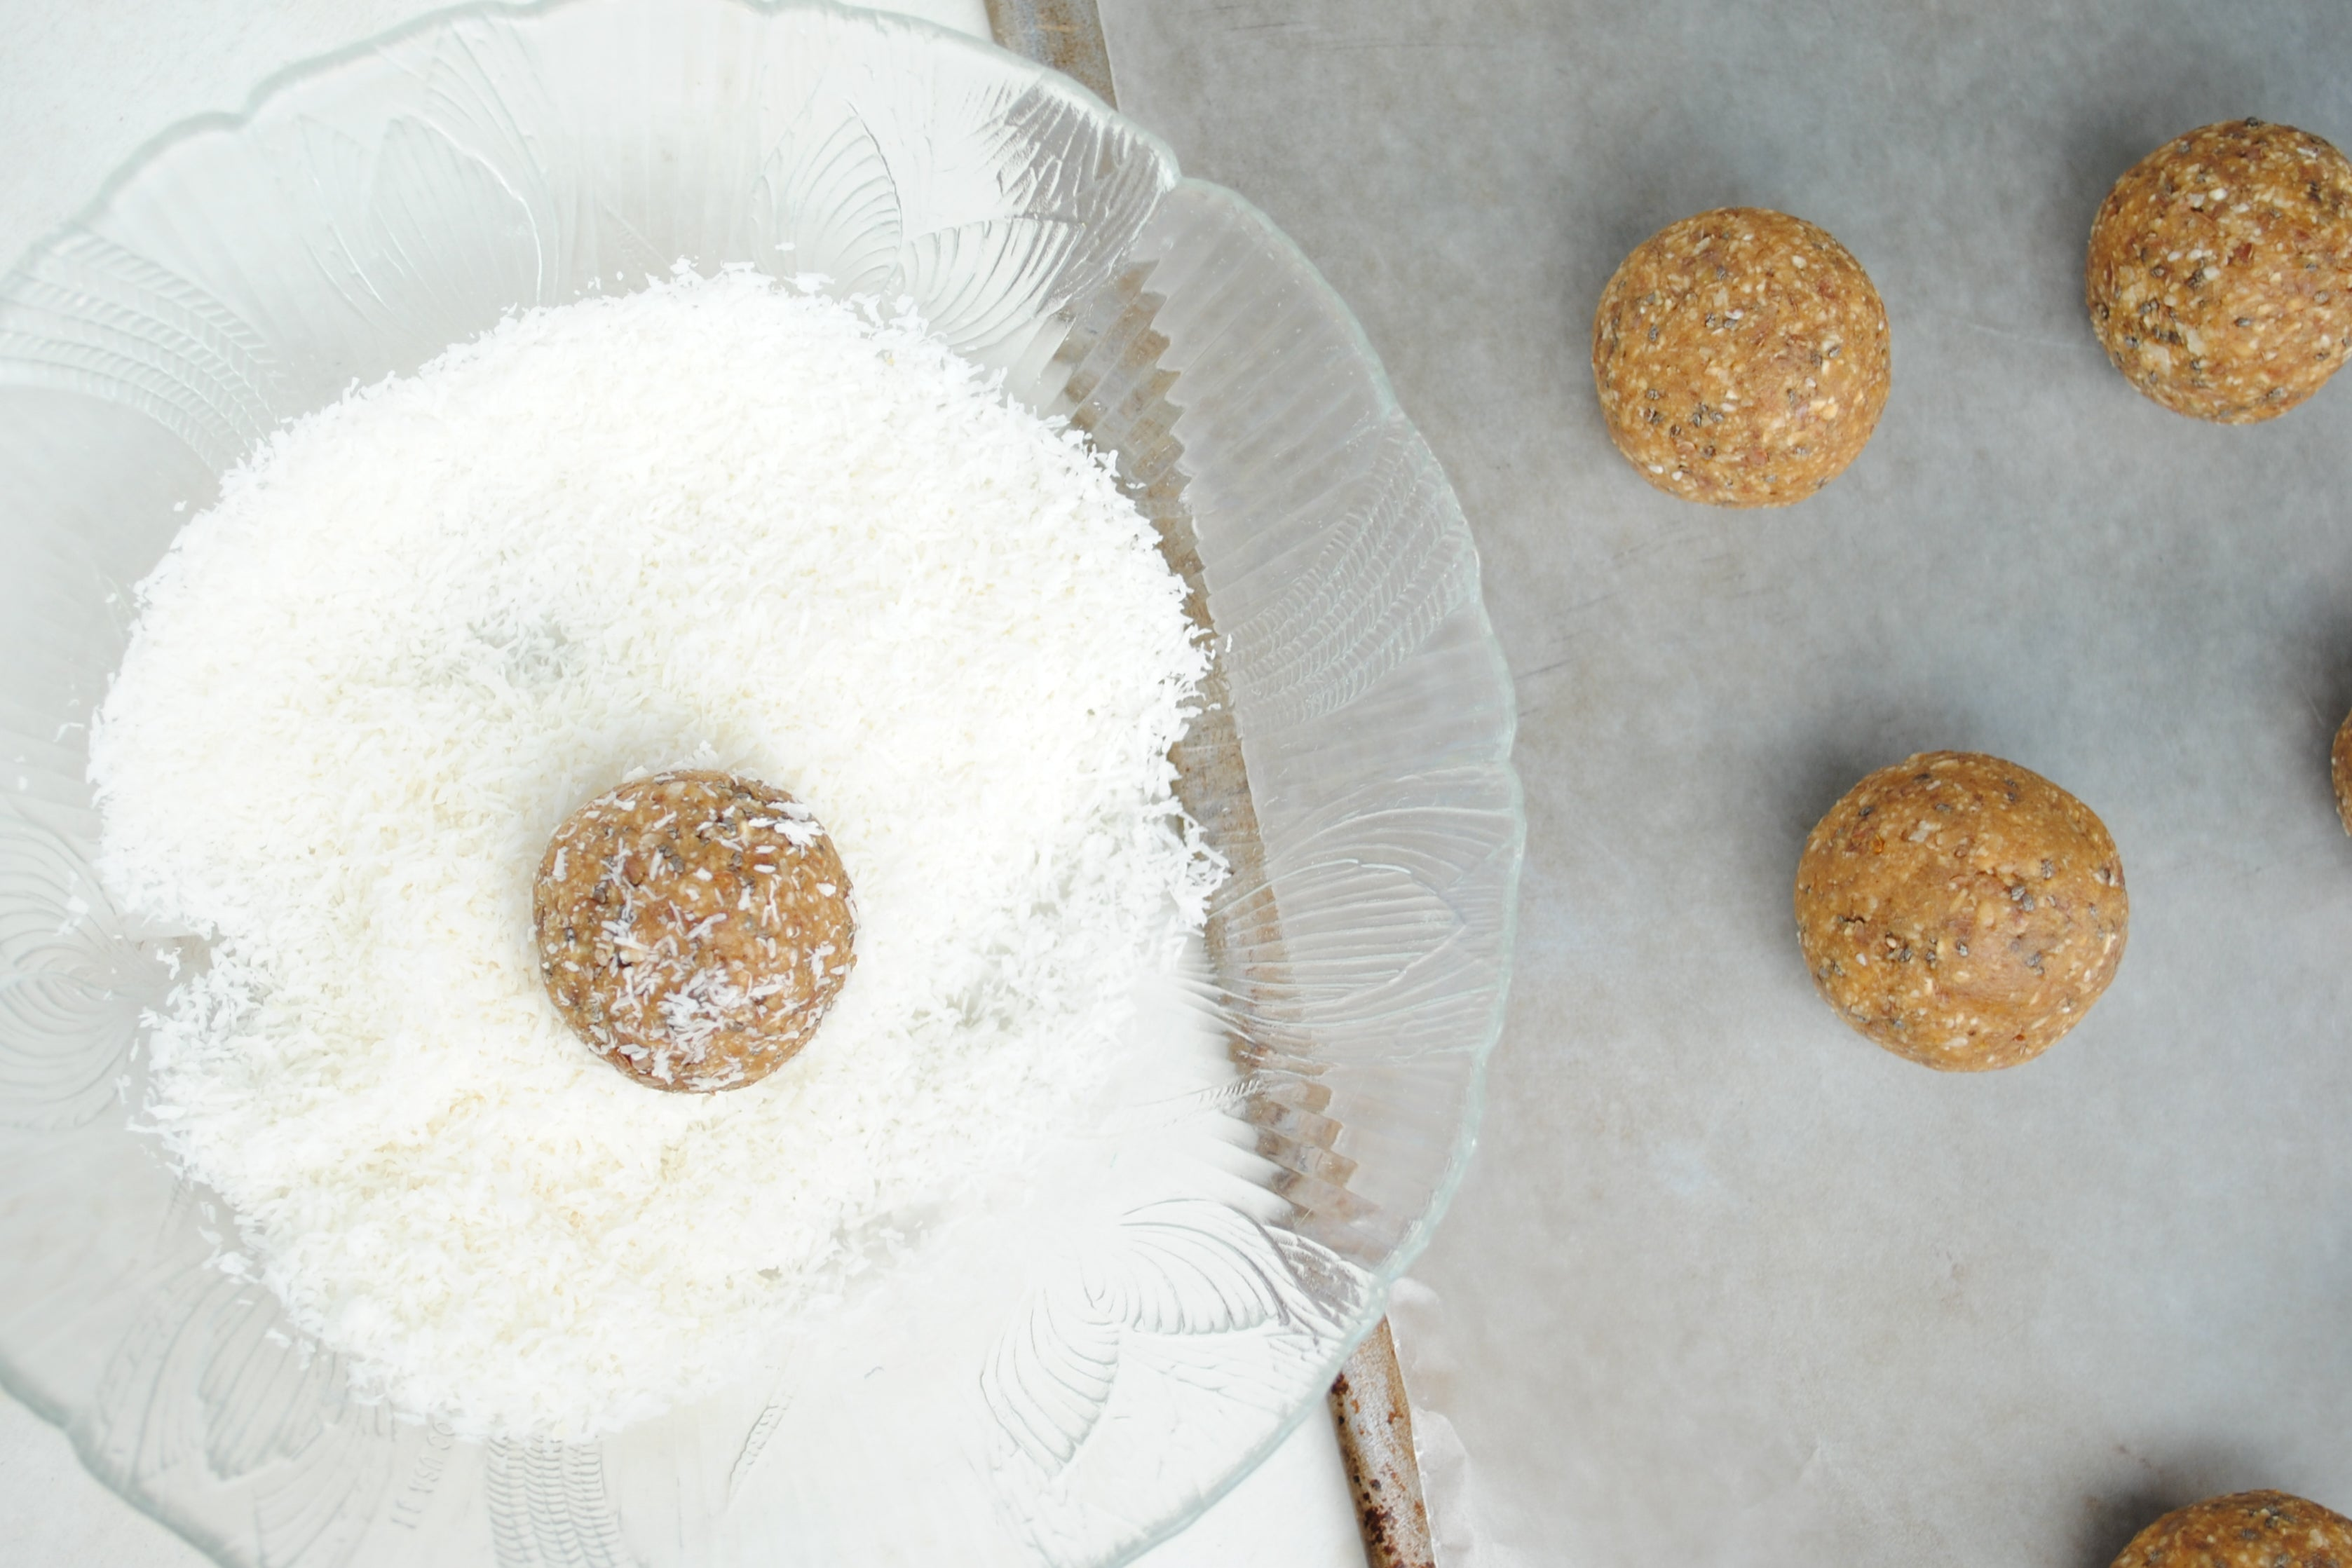 Peanut Butter Coconut Energy Balls - Roll each of the balls in coconut to coat the outside